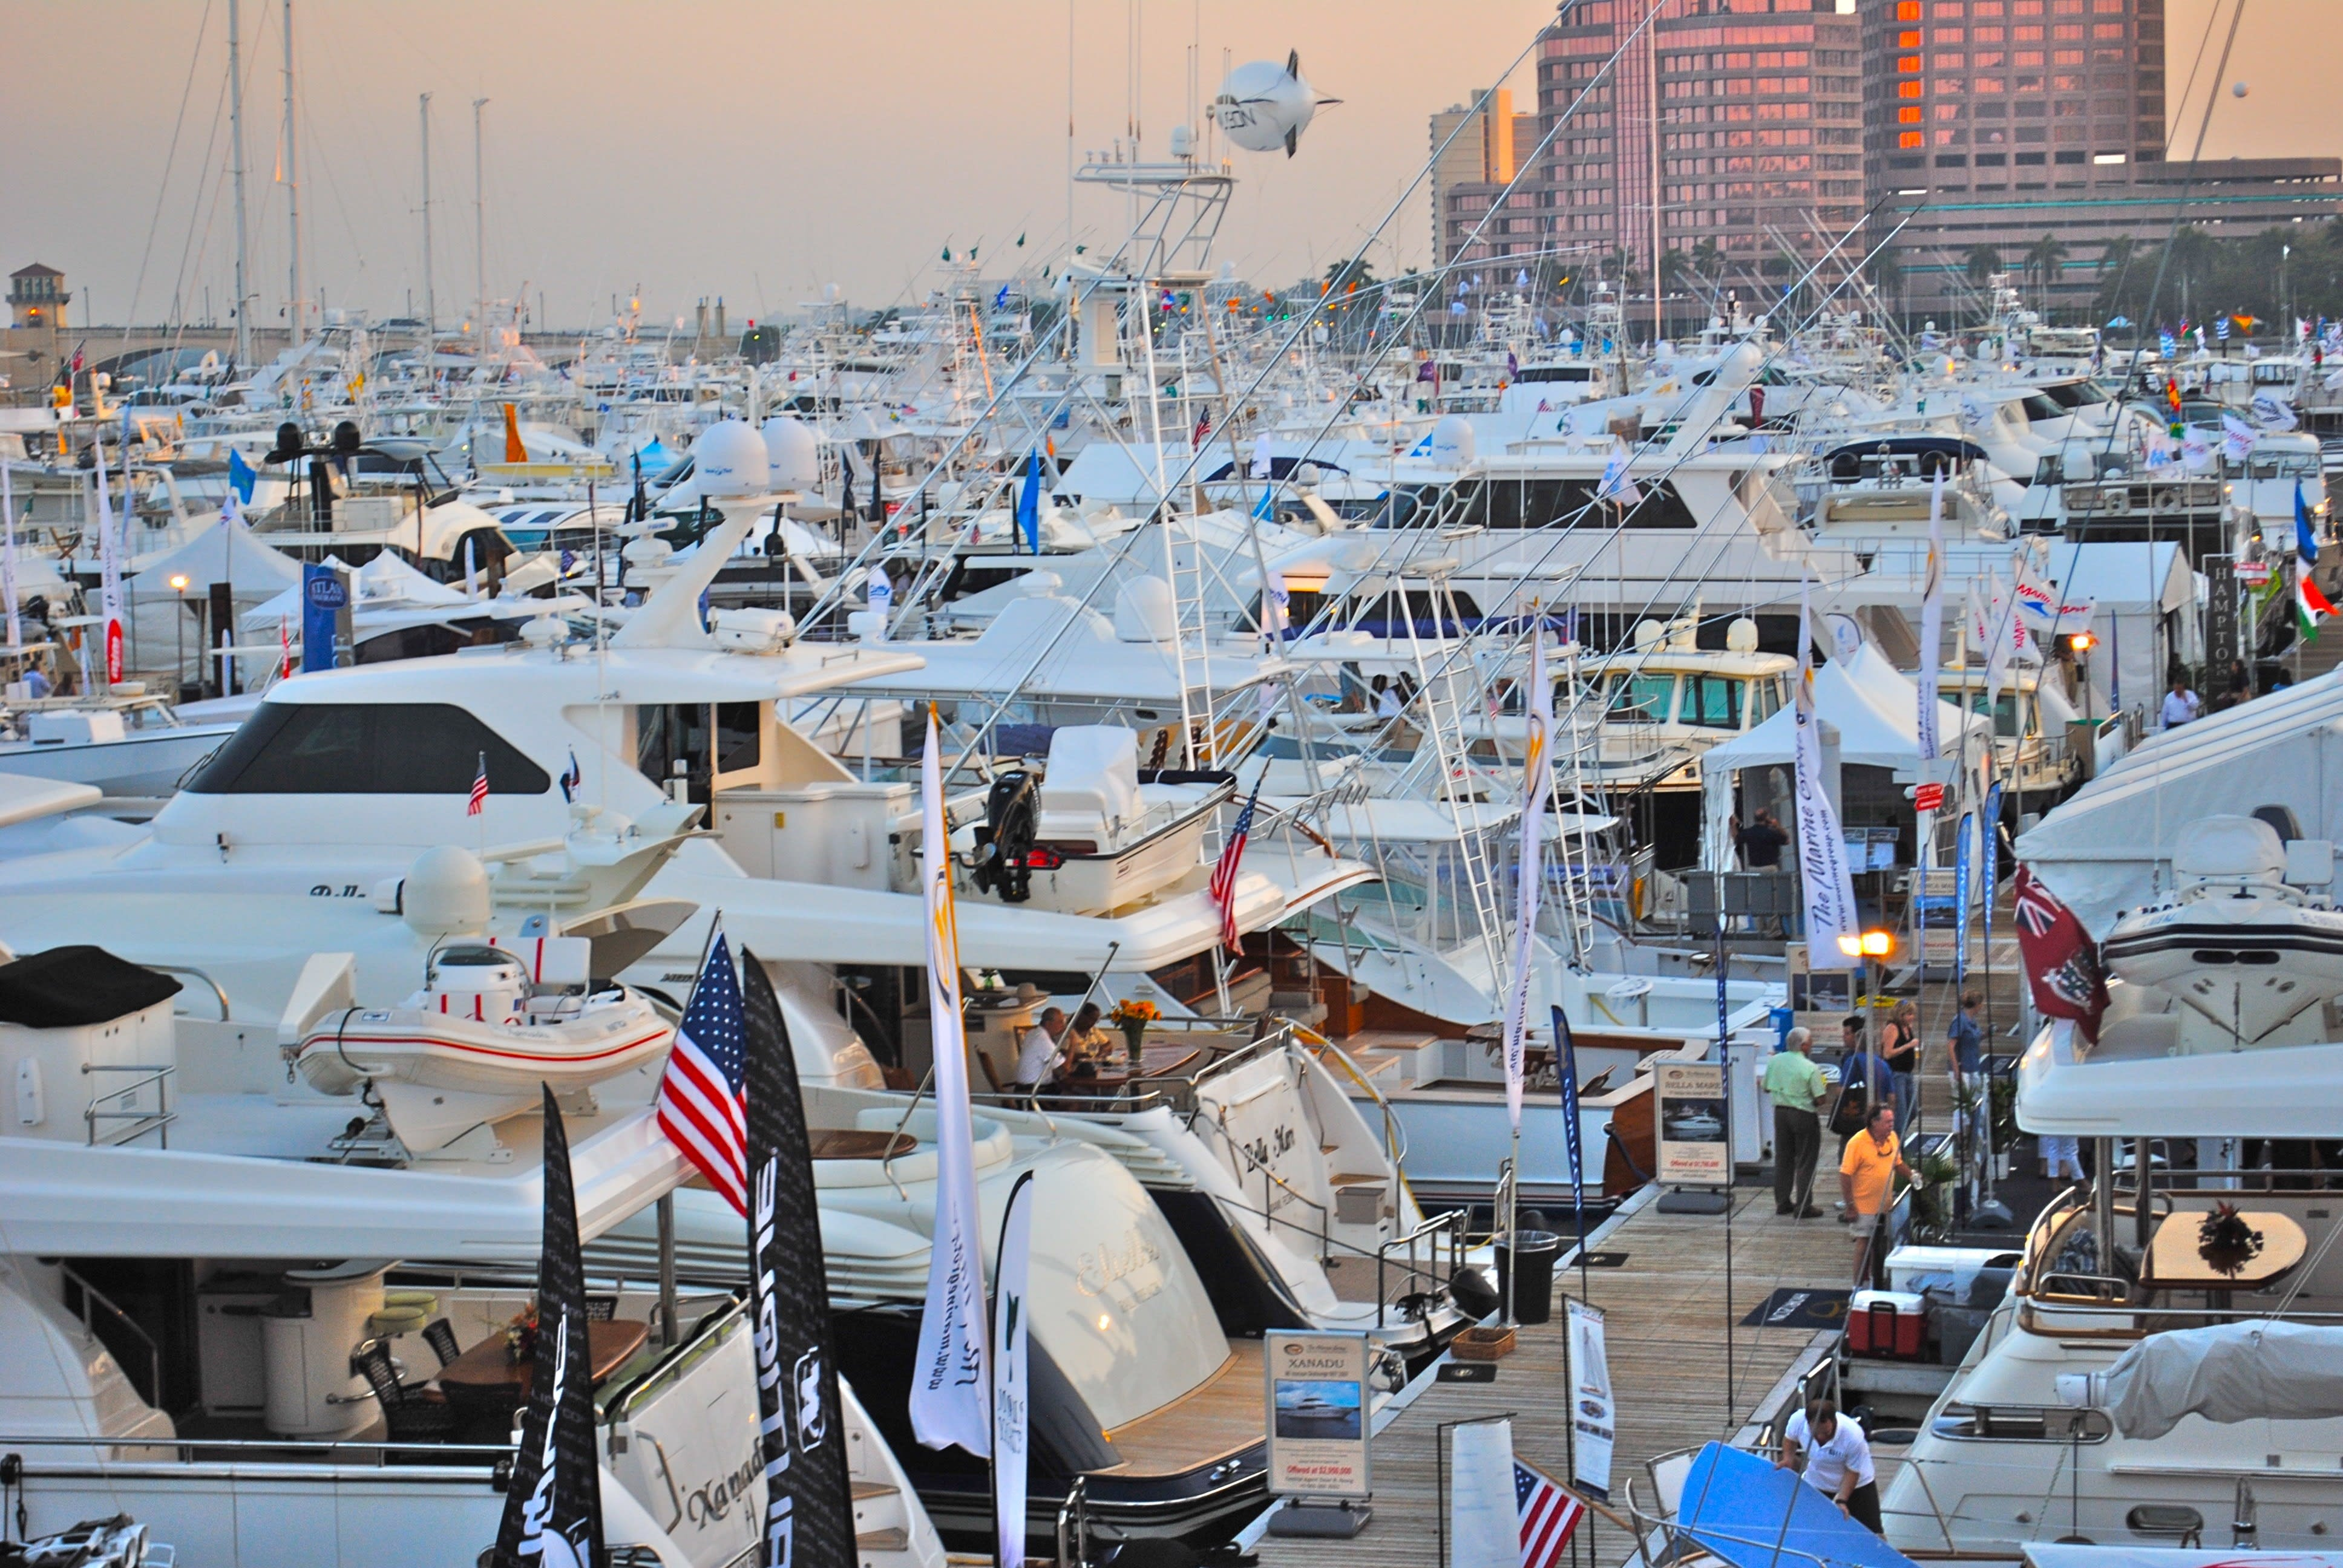 An in-water boat show